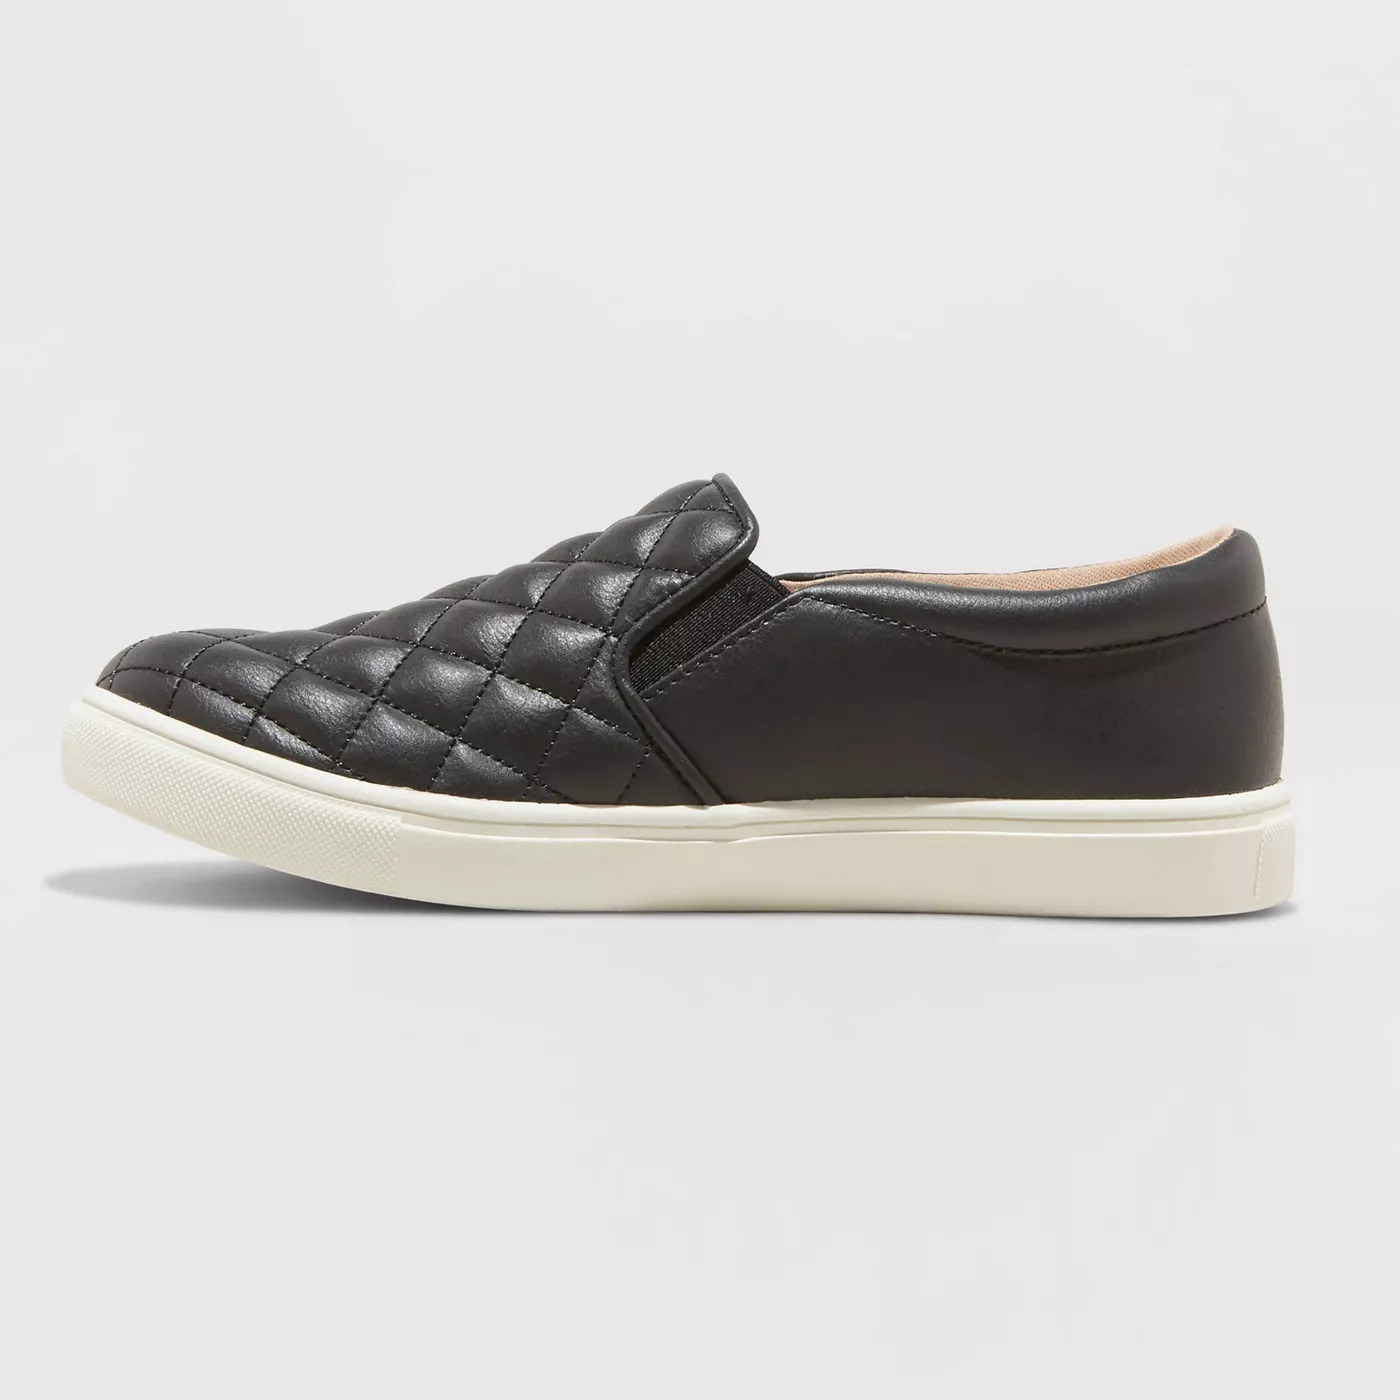 a quilted black faux leather upper with a white rubber sole